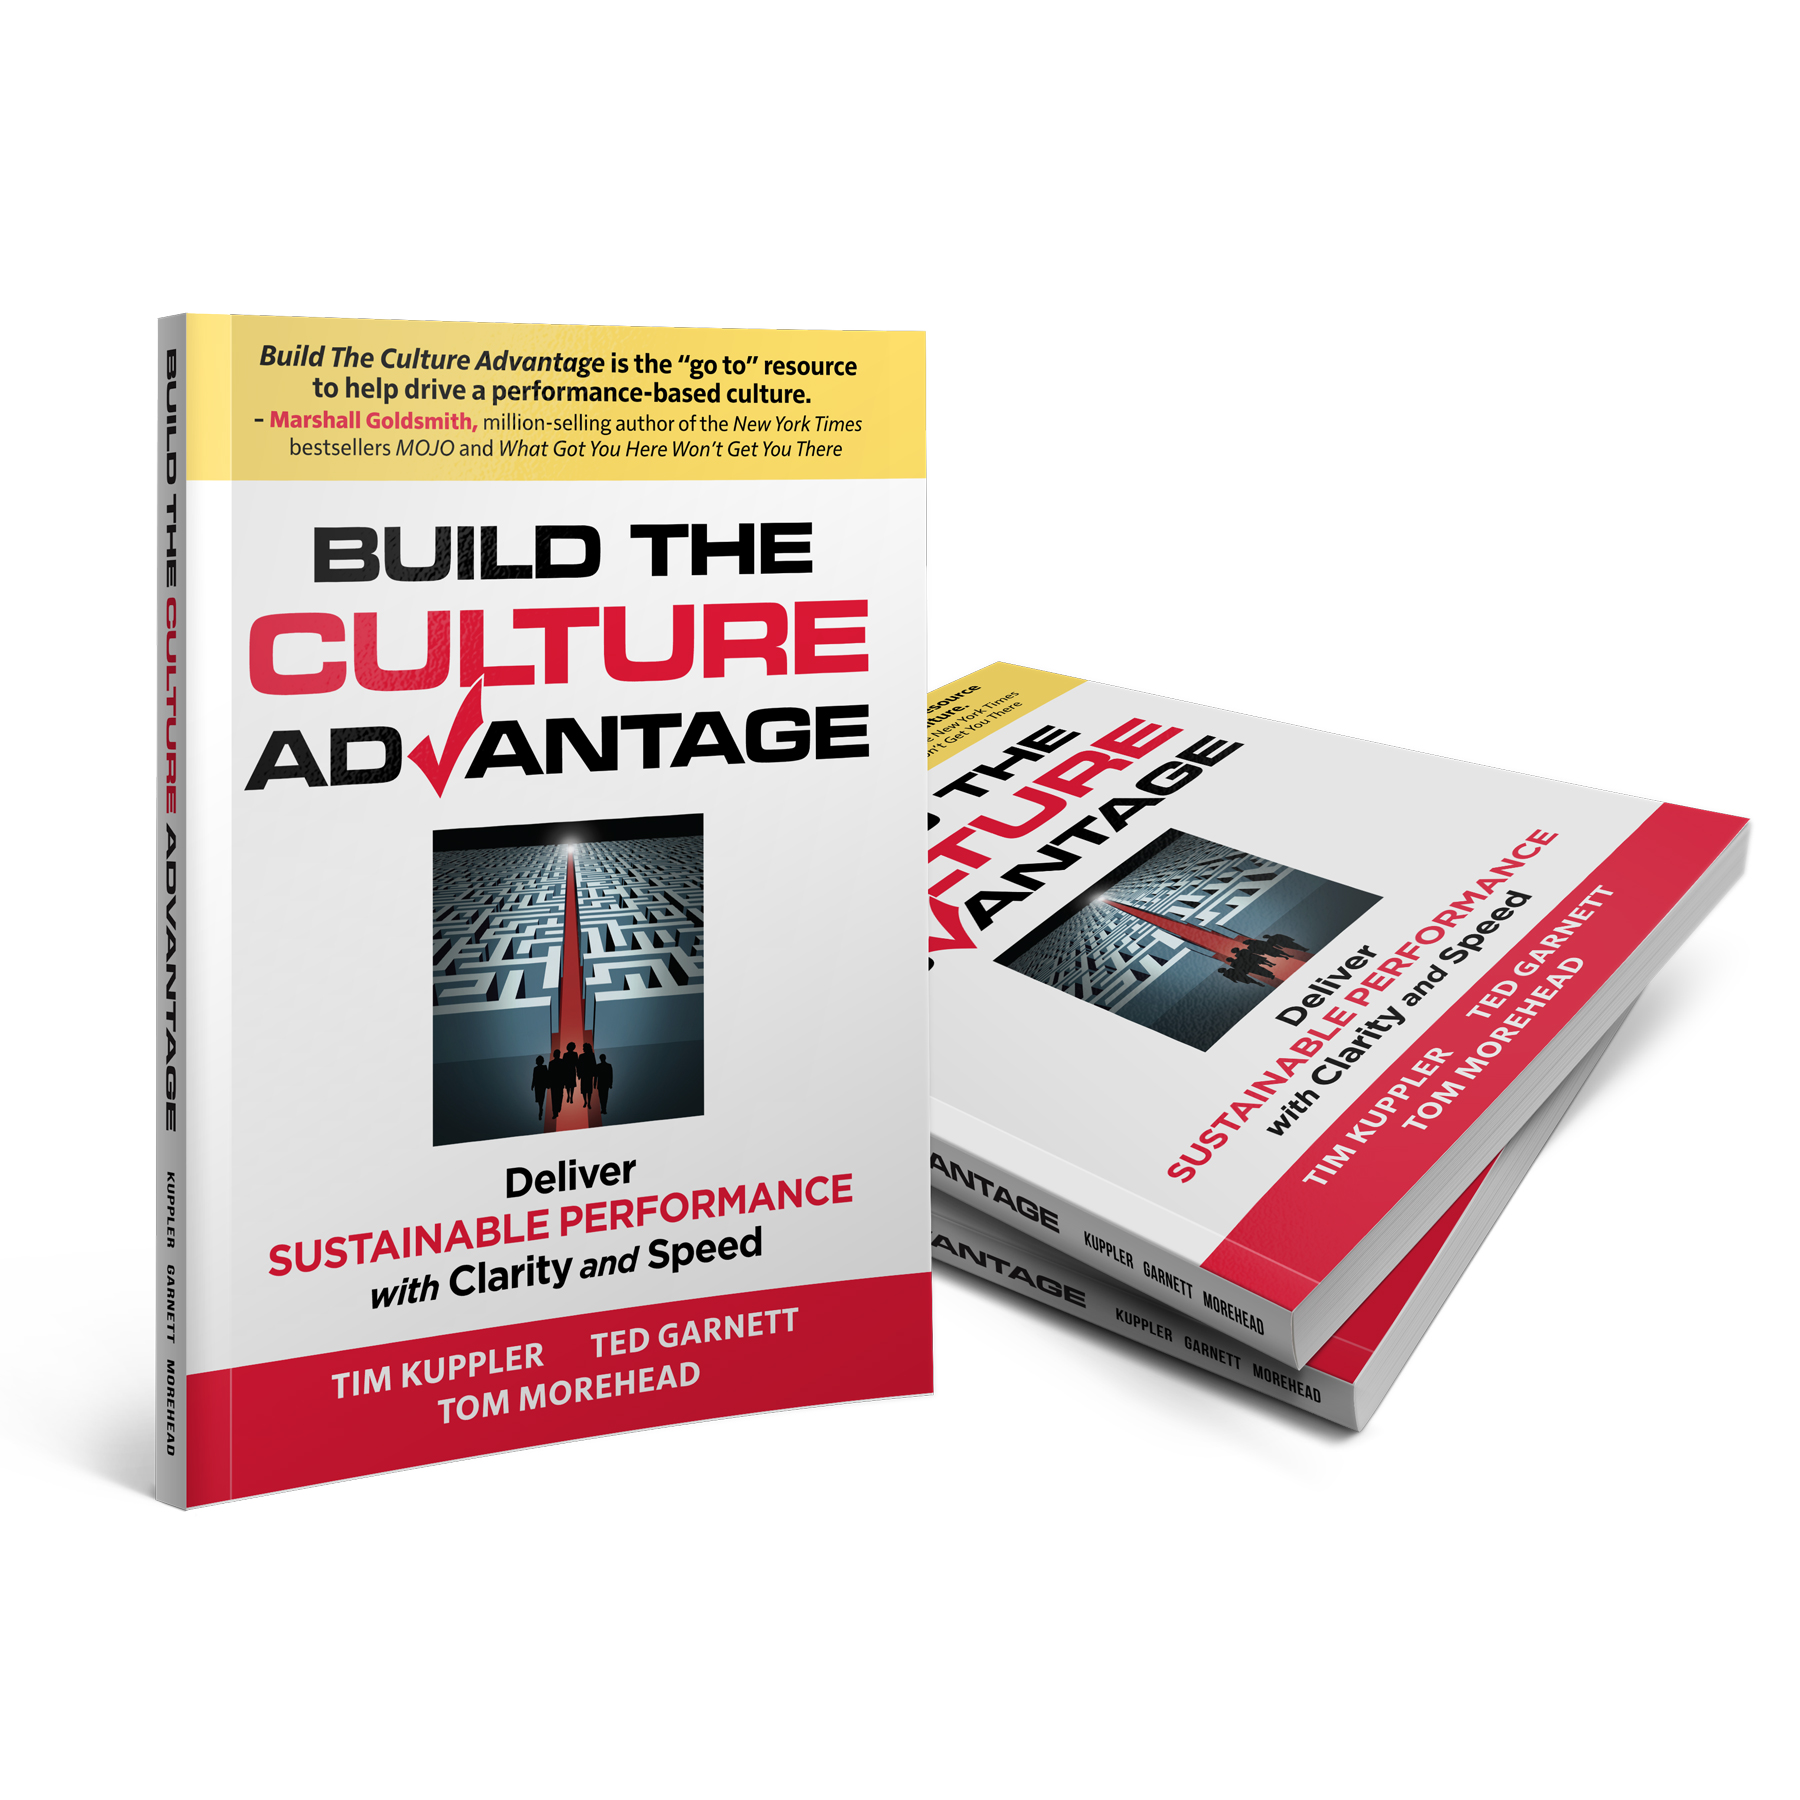 Build The Culture Advantage Book